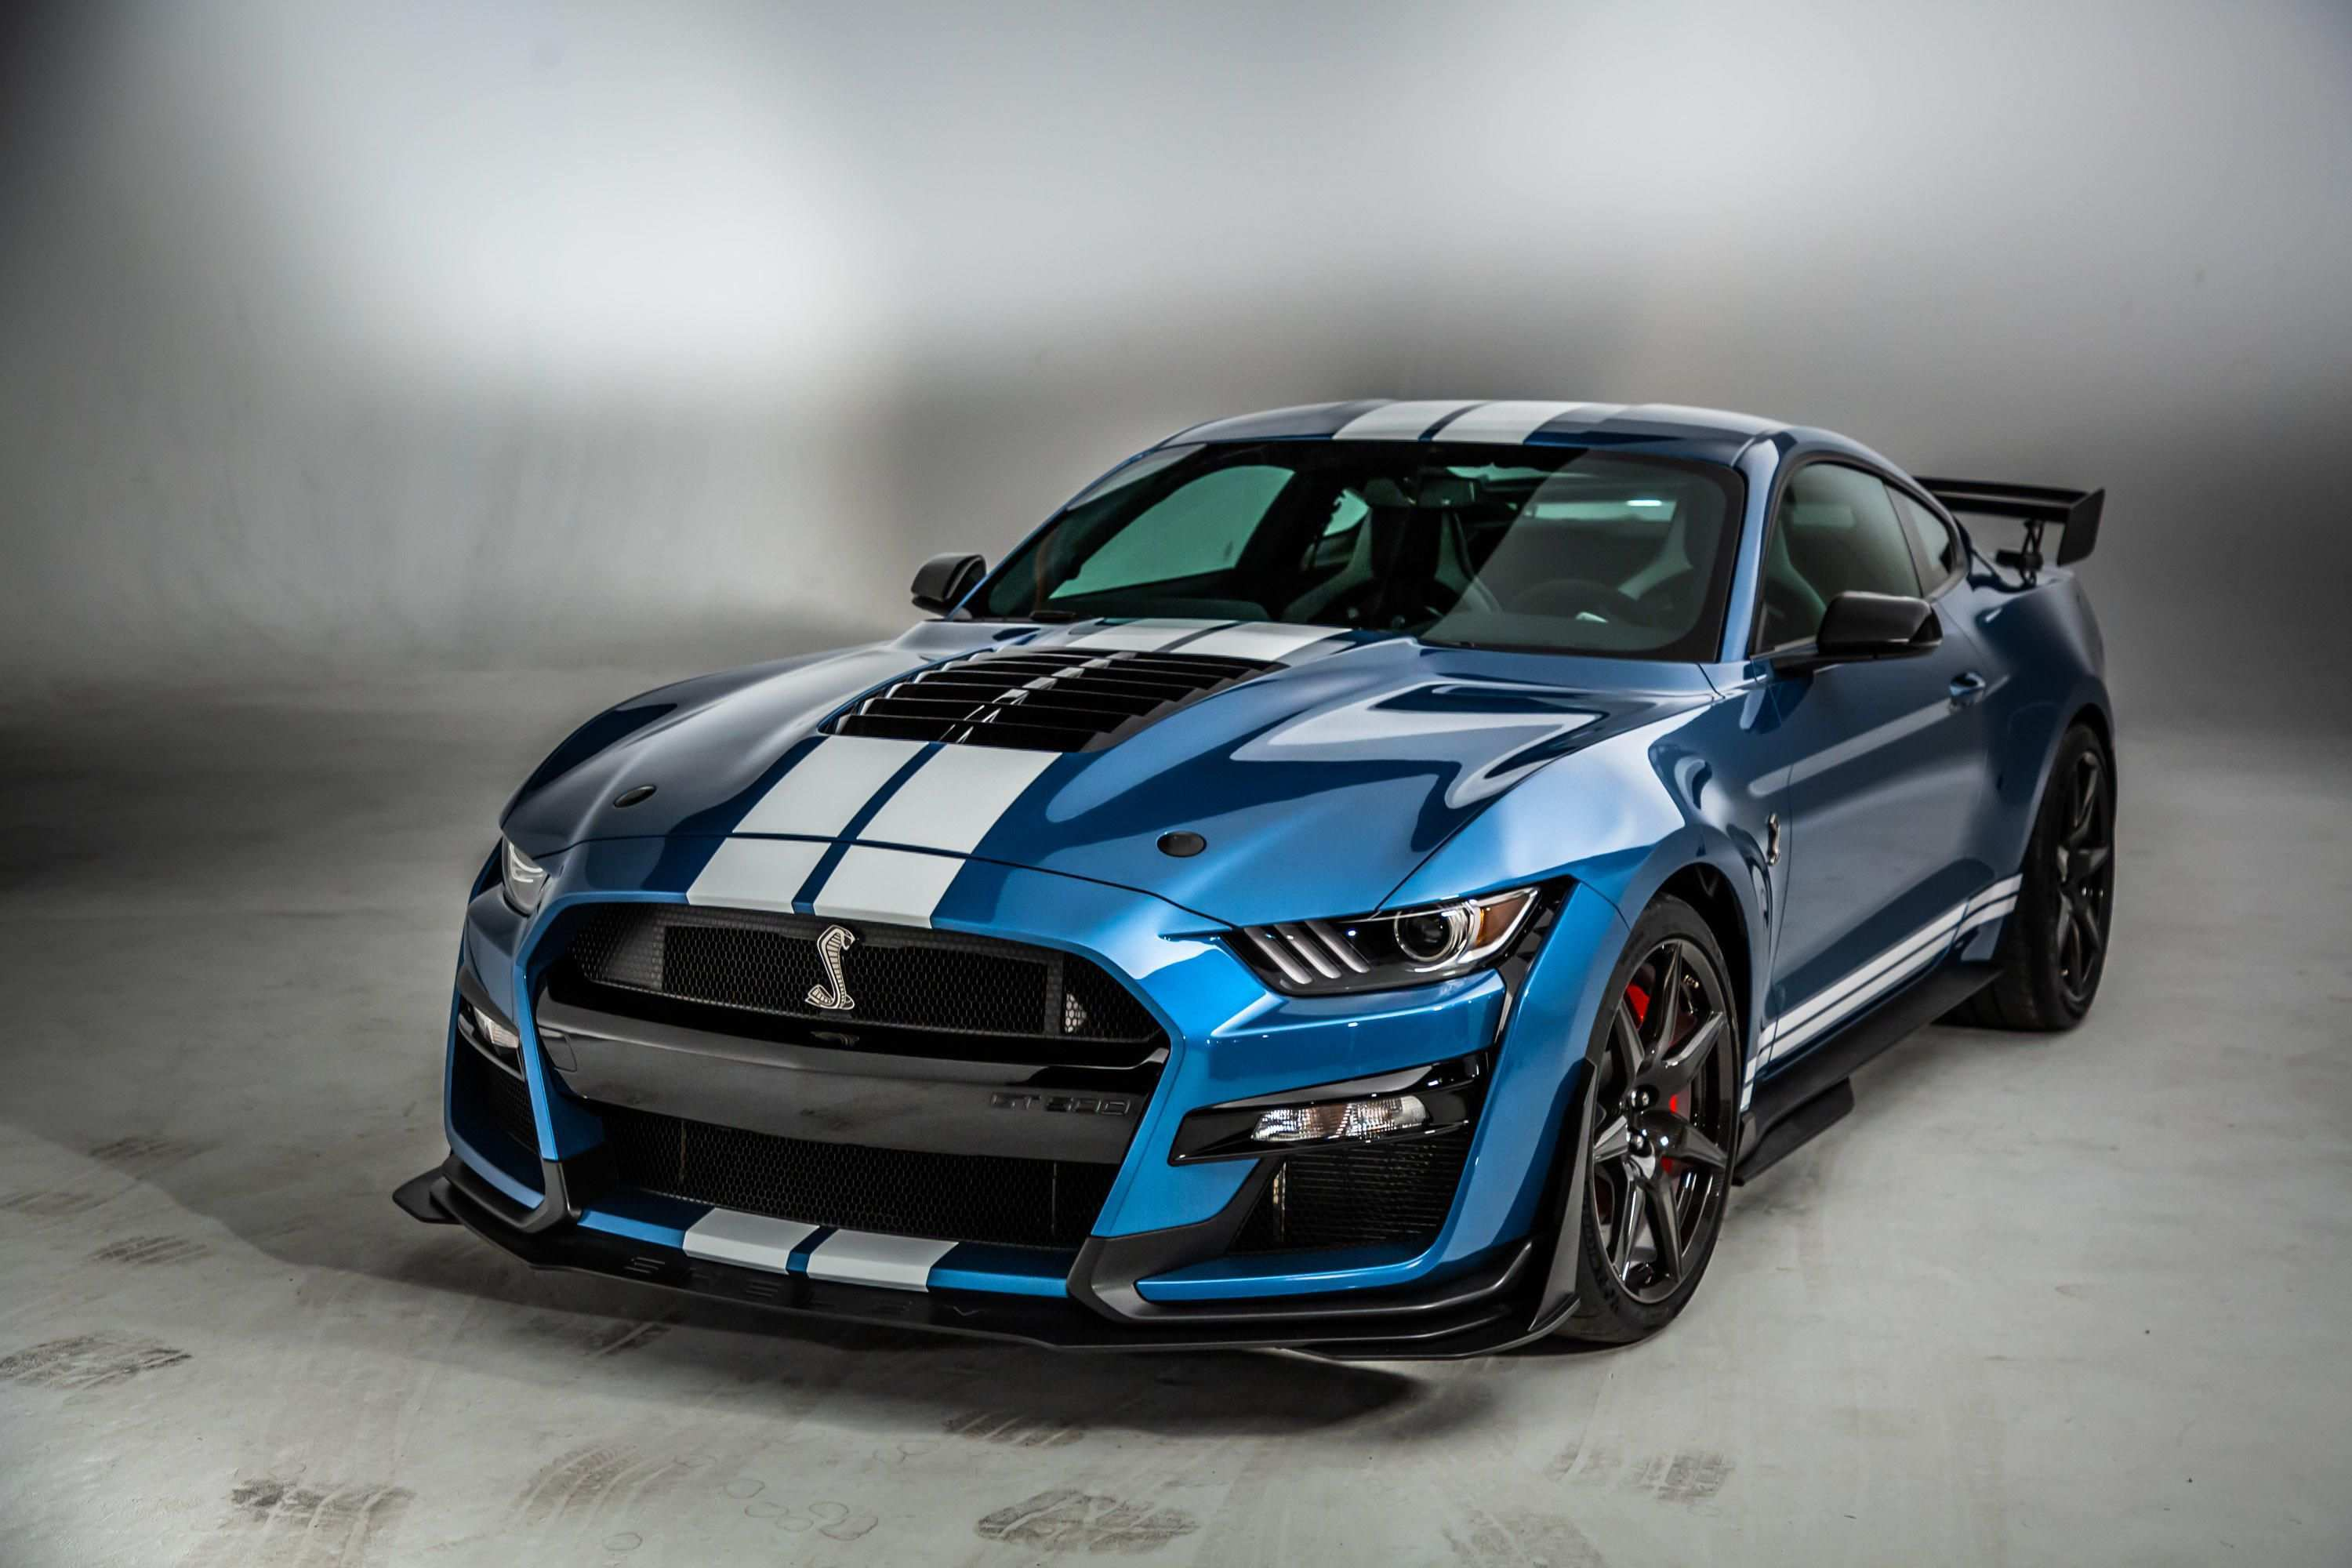 56 Gallery of 2020 Mustang Shelby Gt350 Concept for 2020 Mustang Shelby Gt350